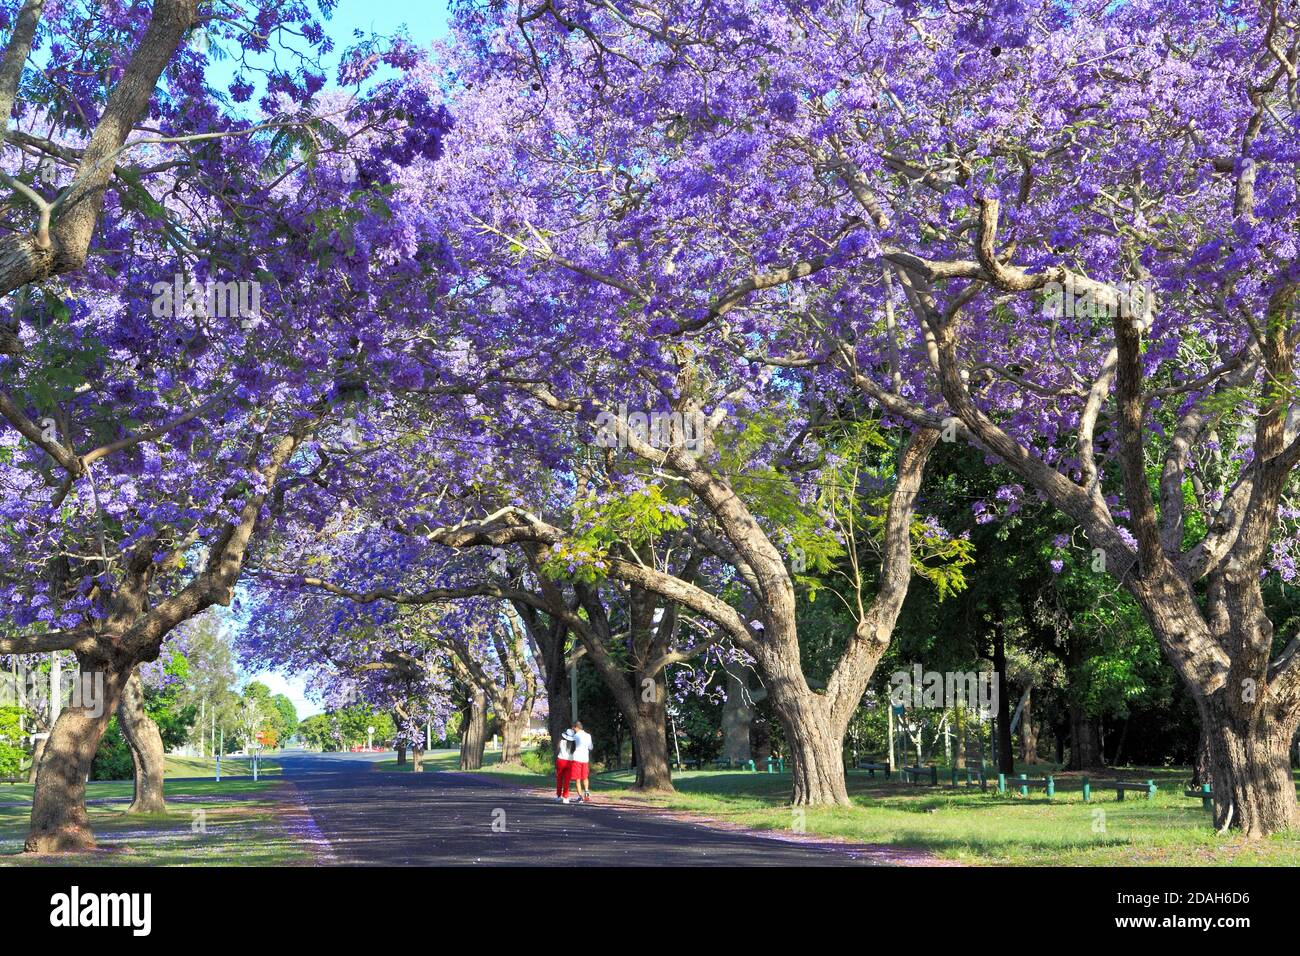 jacaranda-trees-jacaranda-mimosifolia-in-flower-forming-a-canopy-over-the-road-there-are-two-people-walking-along-the-road-bacon-street-grafton-2DAH6D6.jpg